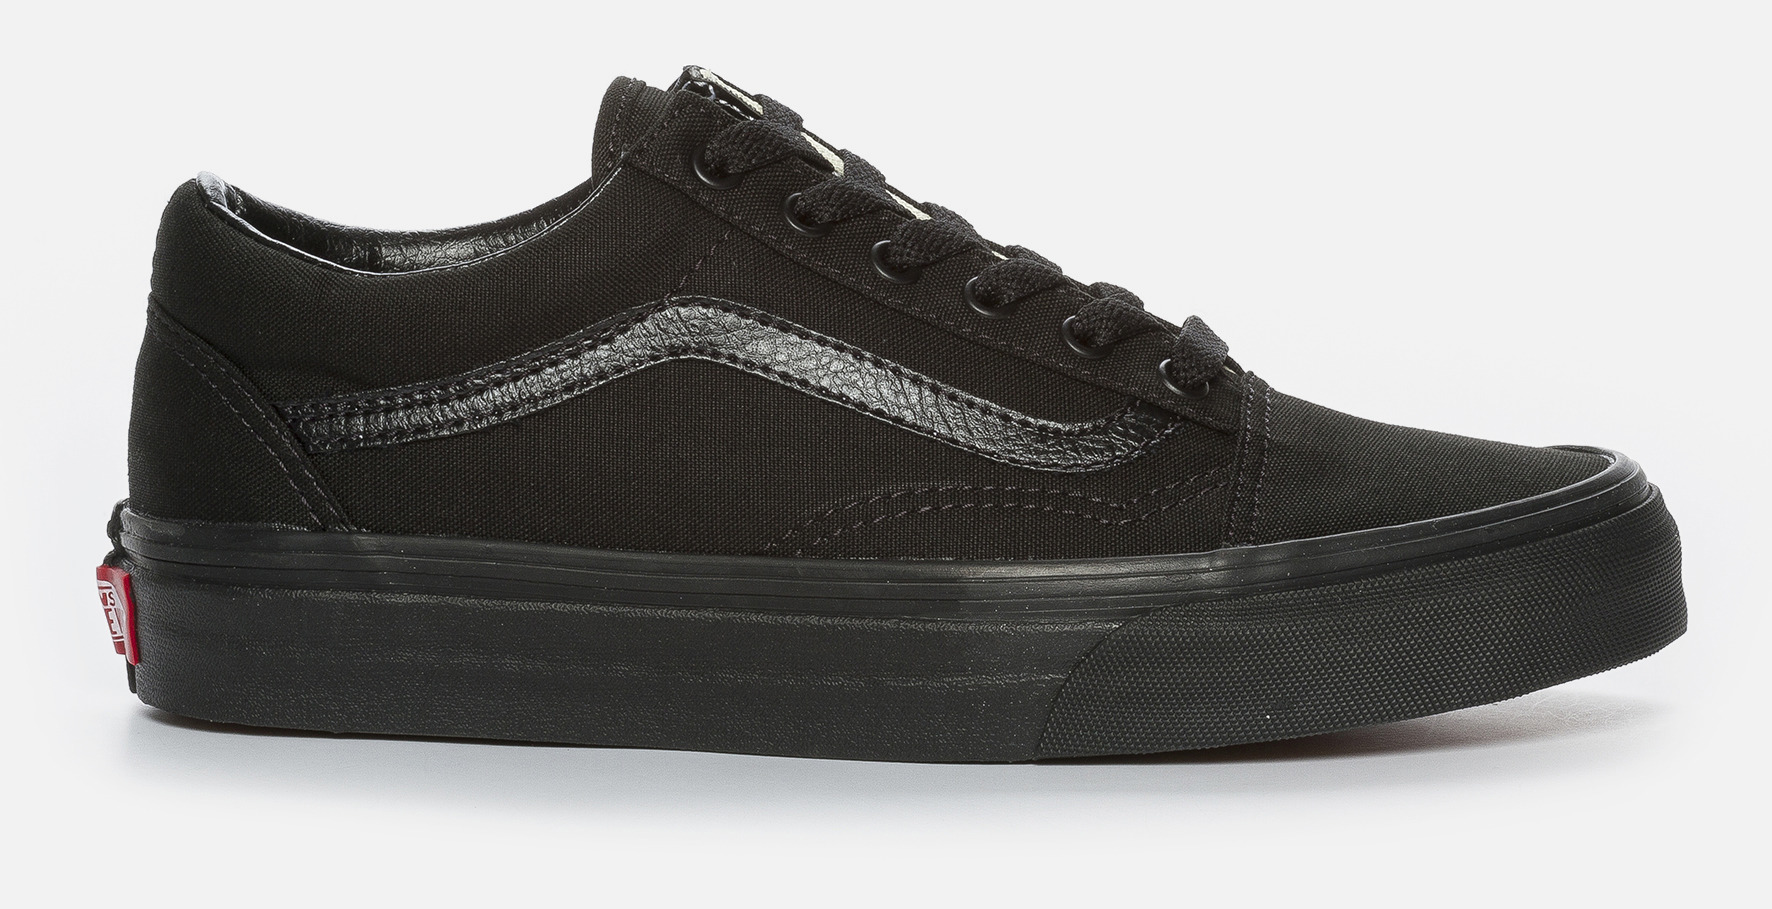 vans Old Skool kungsgatan